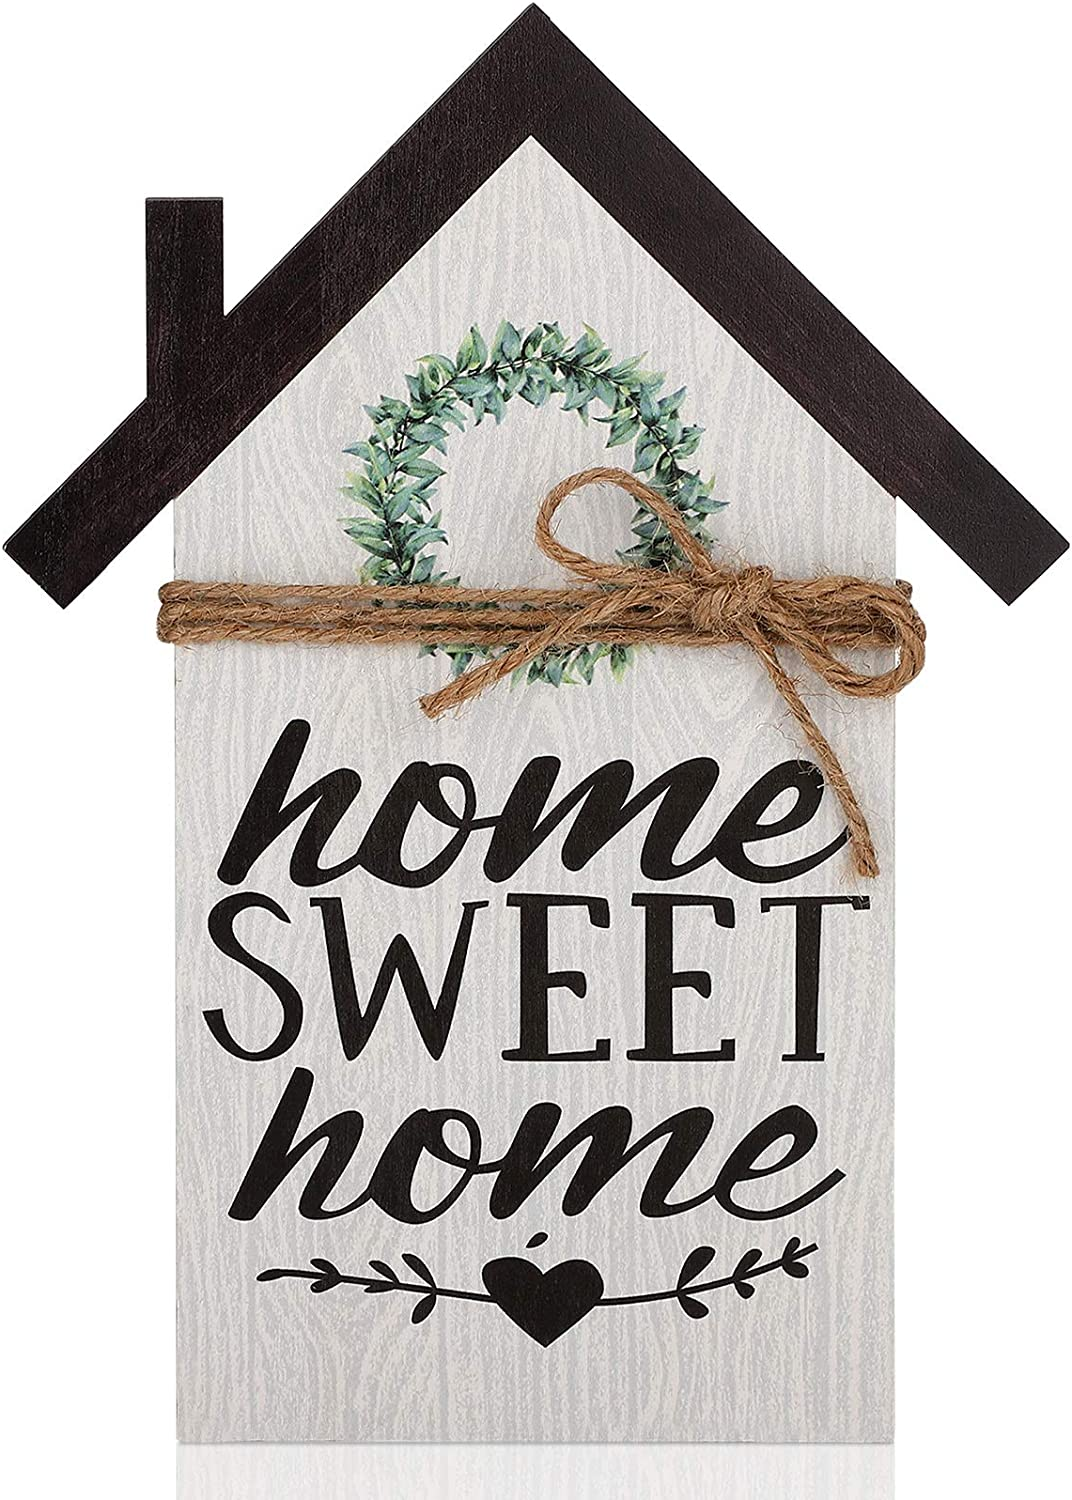 Rustic Wood Block House, Home Sweet Home Sign, Wood Houses Farmhouse Wall Decor, Small Wood House Decor for Bedroom Kitchen Living Room and Outdoor Decor